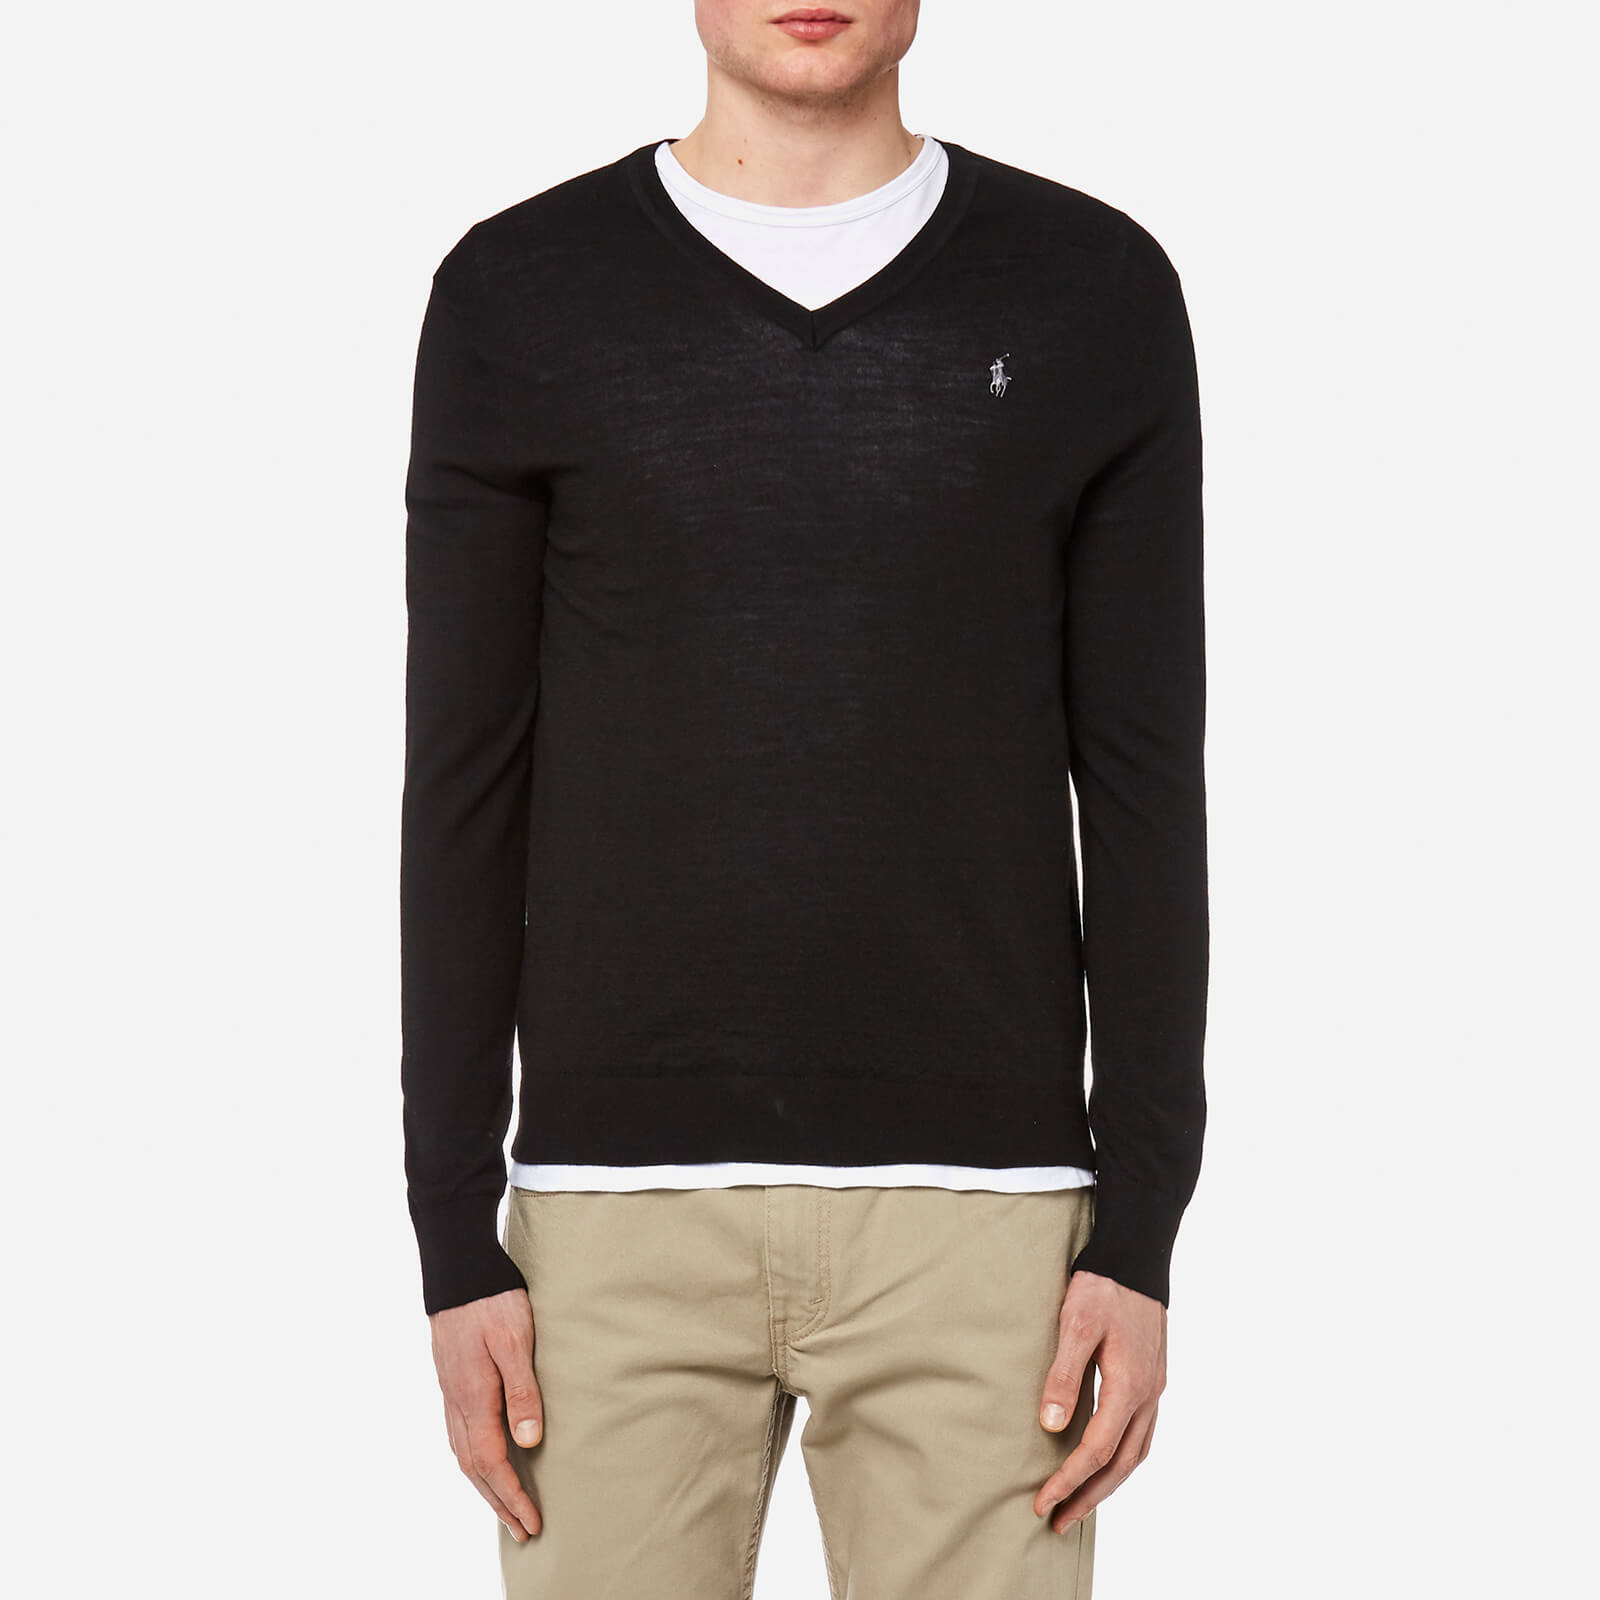 cdfe9c9ea7 Polo Ralph Lauren Men's Merino Wool V-Neck Jumper - Polo Black